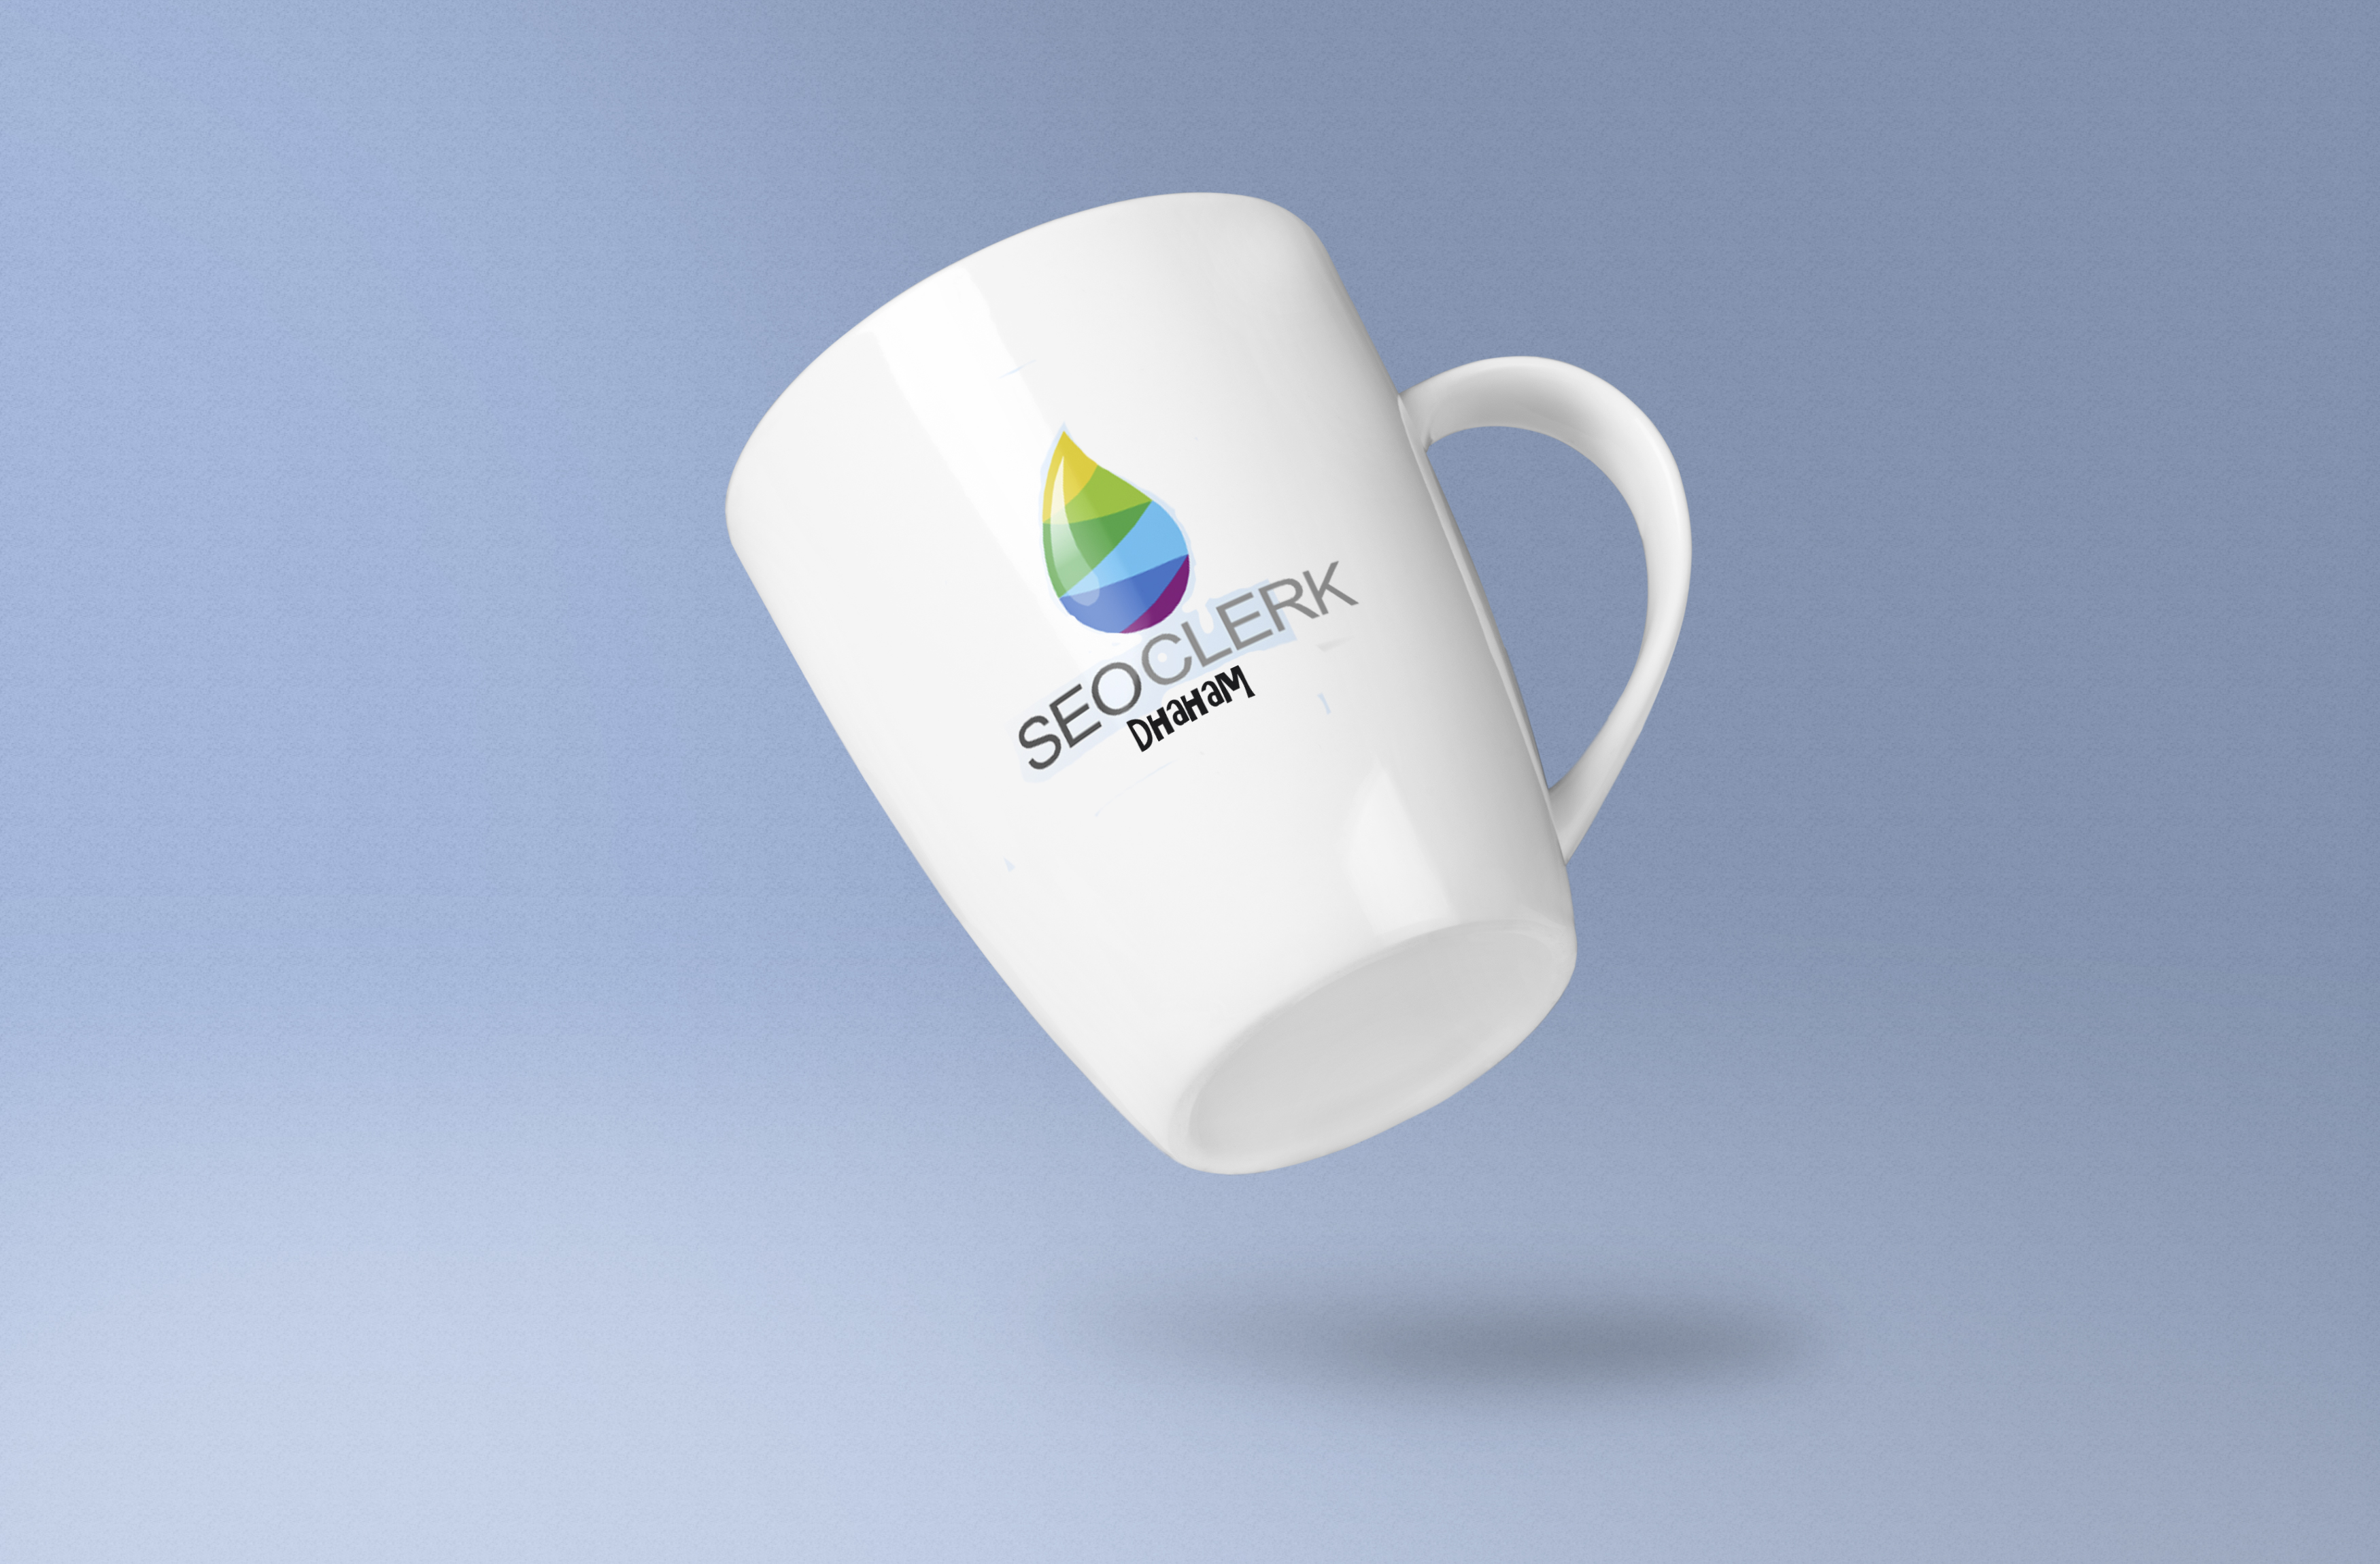 DESIGN mug, T shirt, packing box, soda can, cap and others